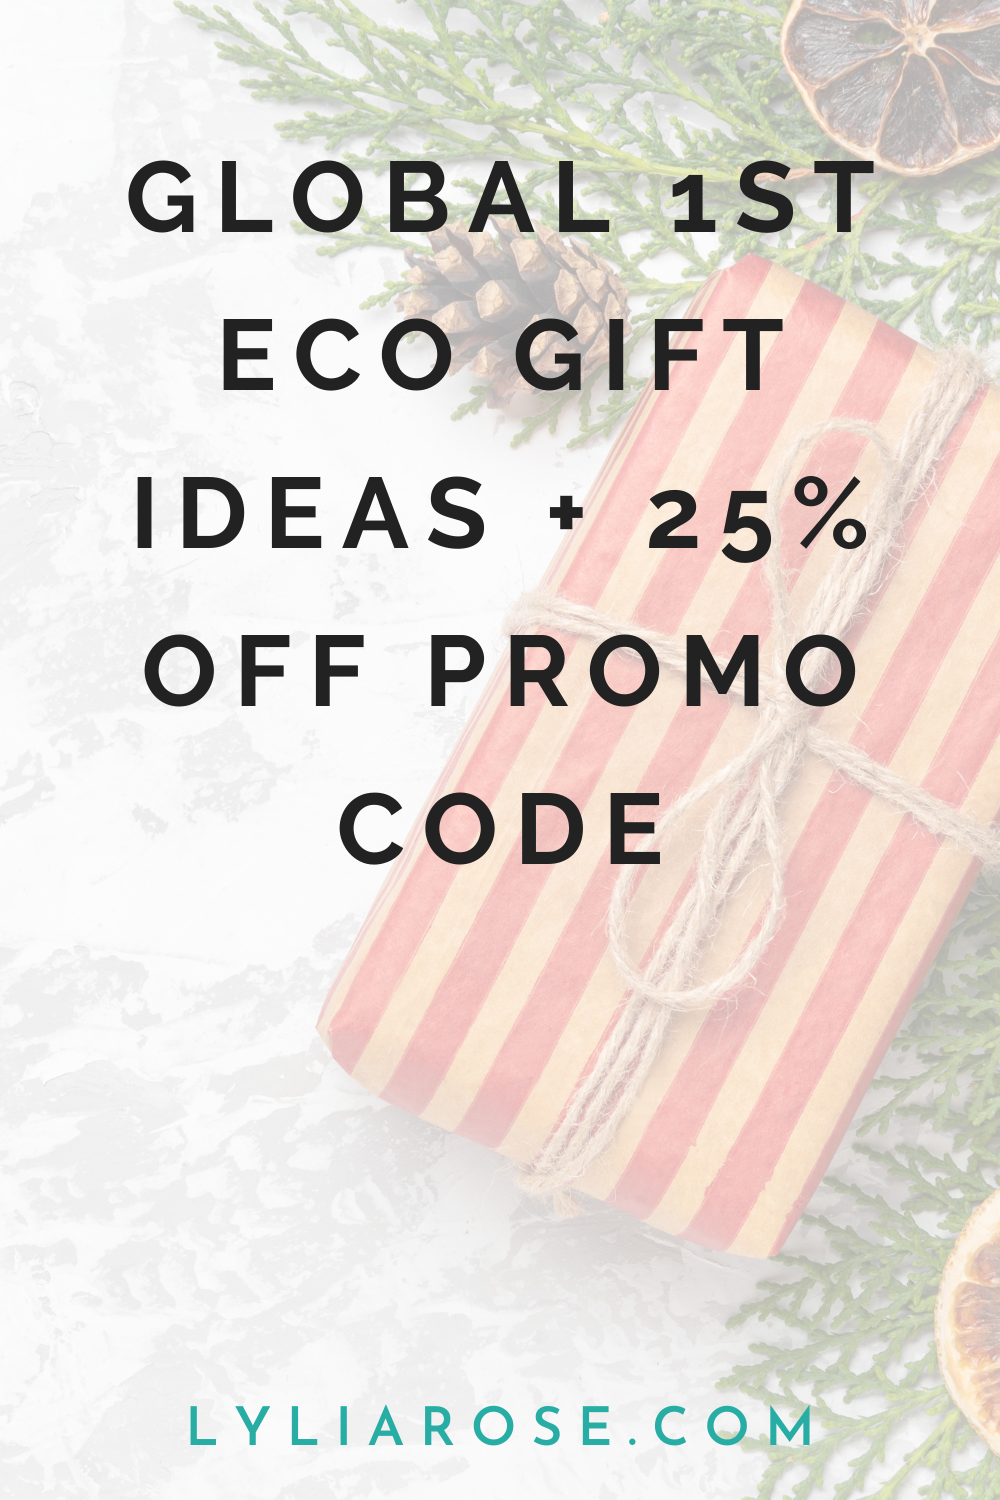 Global 1st eco friendly gift ideas + 25% off promo code (1)